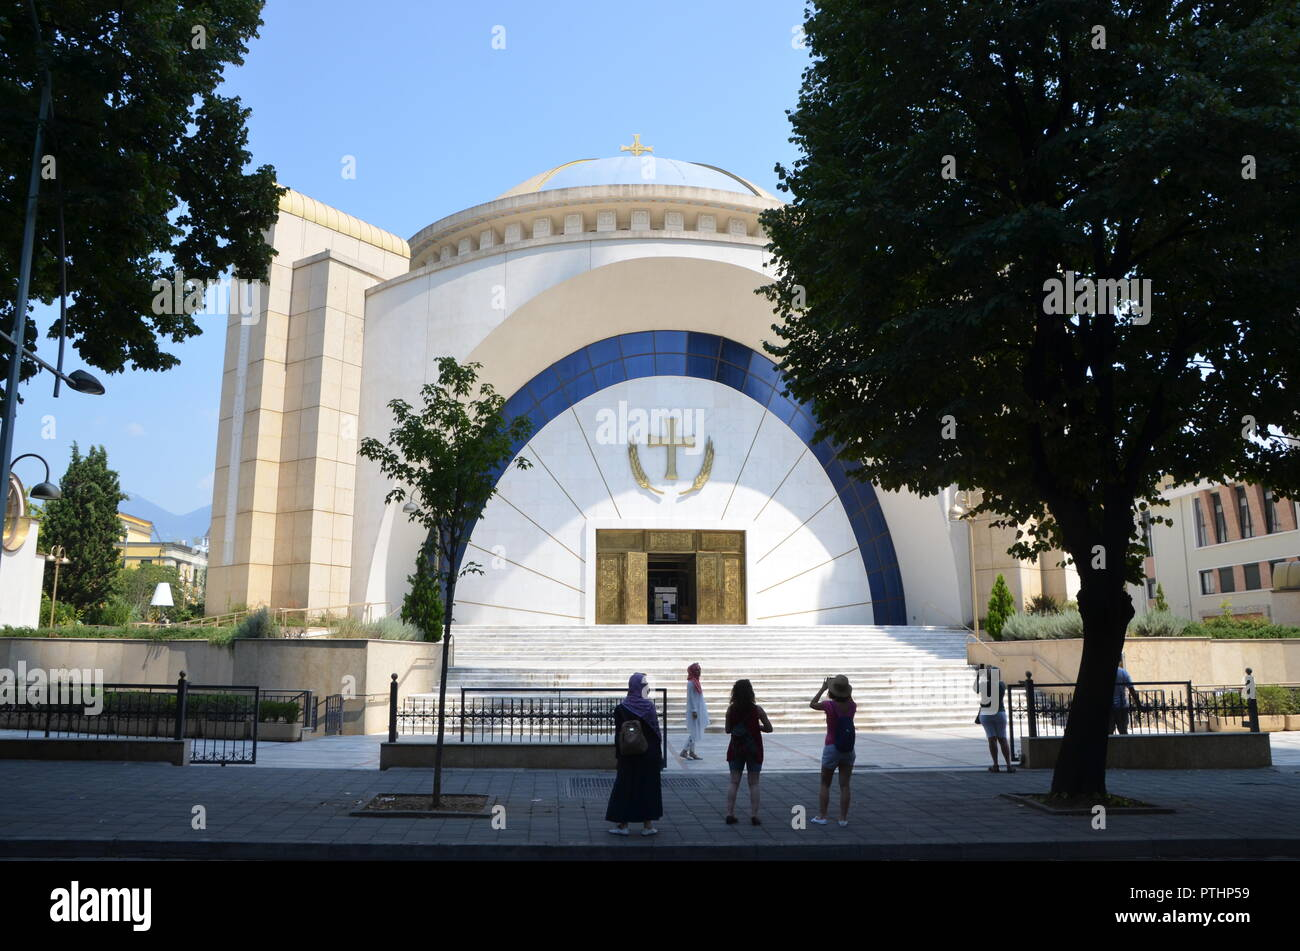 Resurrection Cathedral albanian orthodox church in central tirana albania - Stock Image